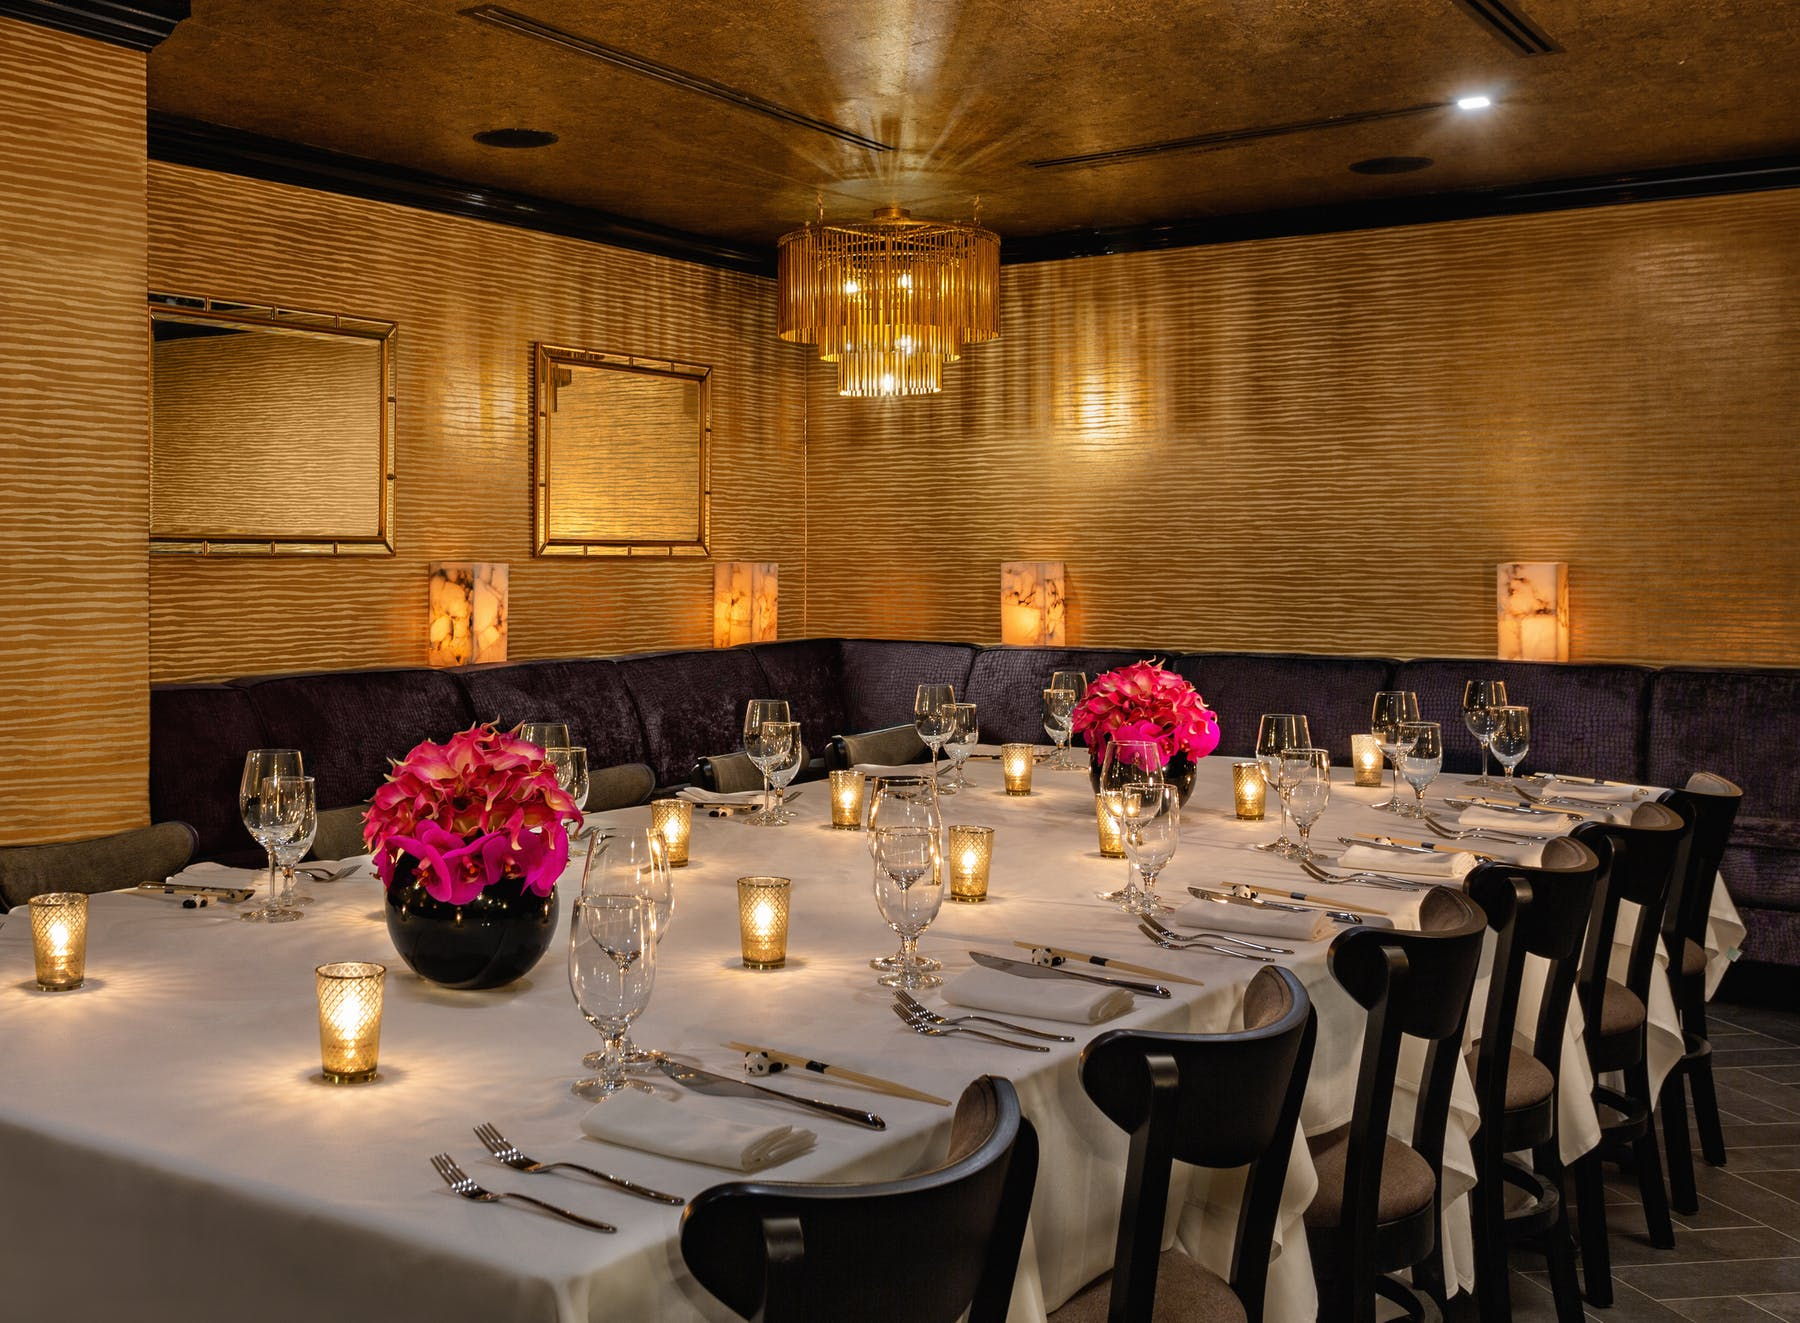 Emperor Private Dining Room at Philippe Chow Downtown